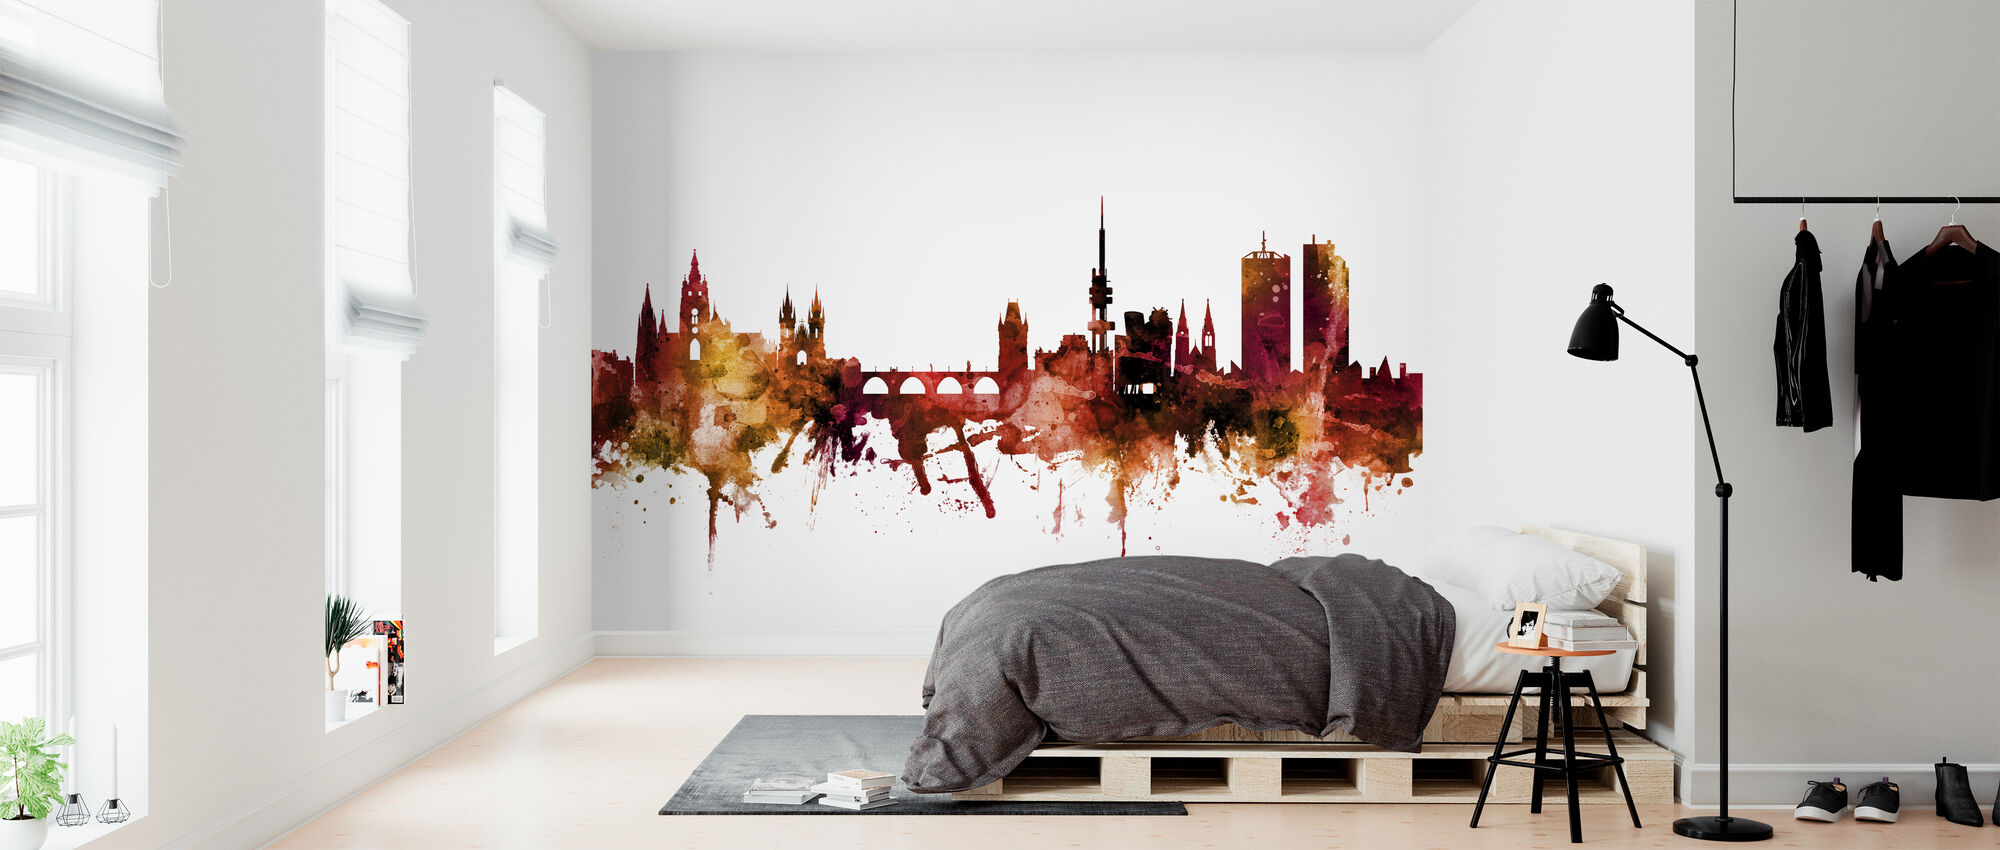 Prague (Praha) Czech Republic Skyline - Wallpaper - Bedroom